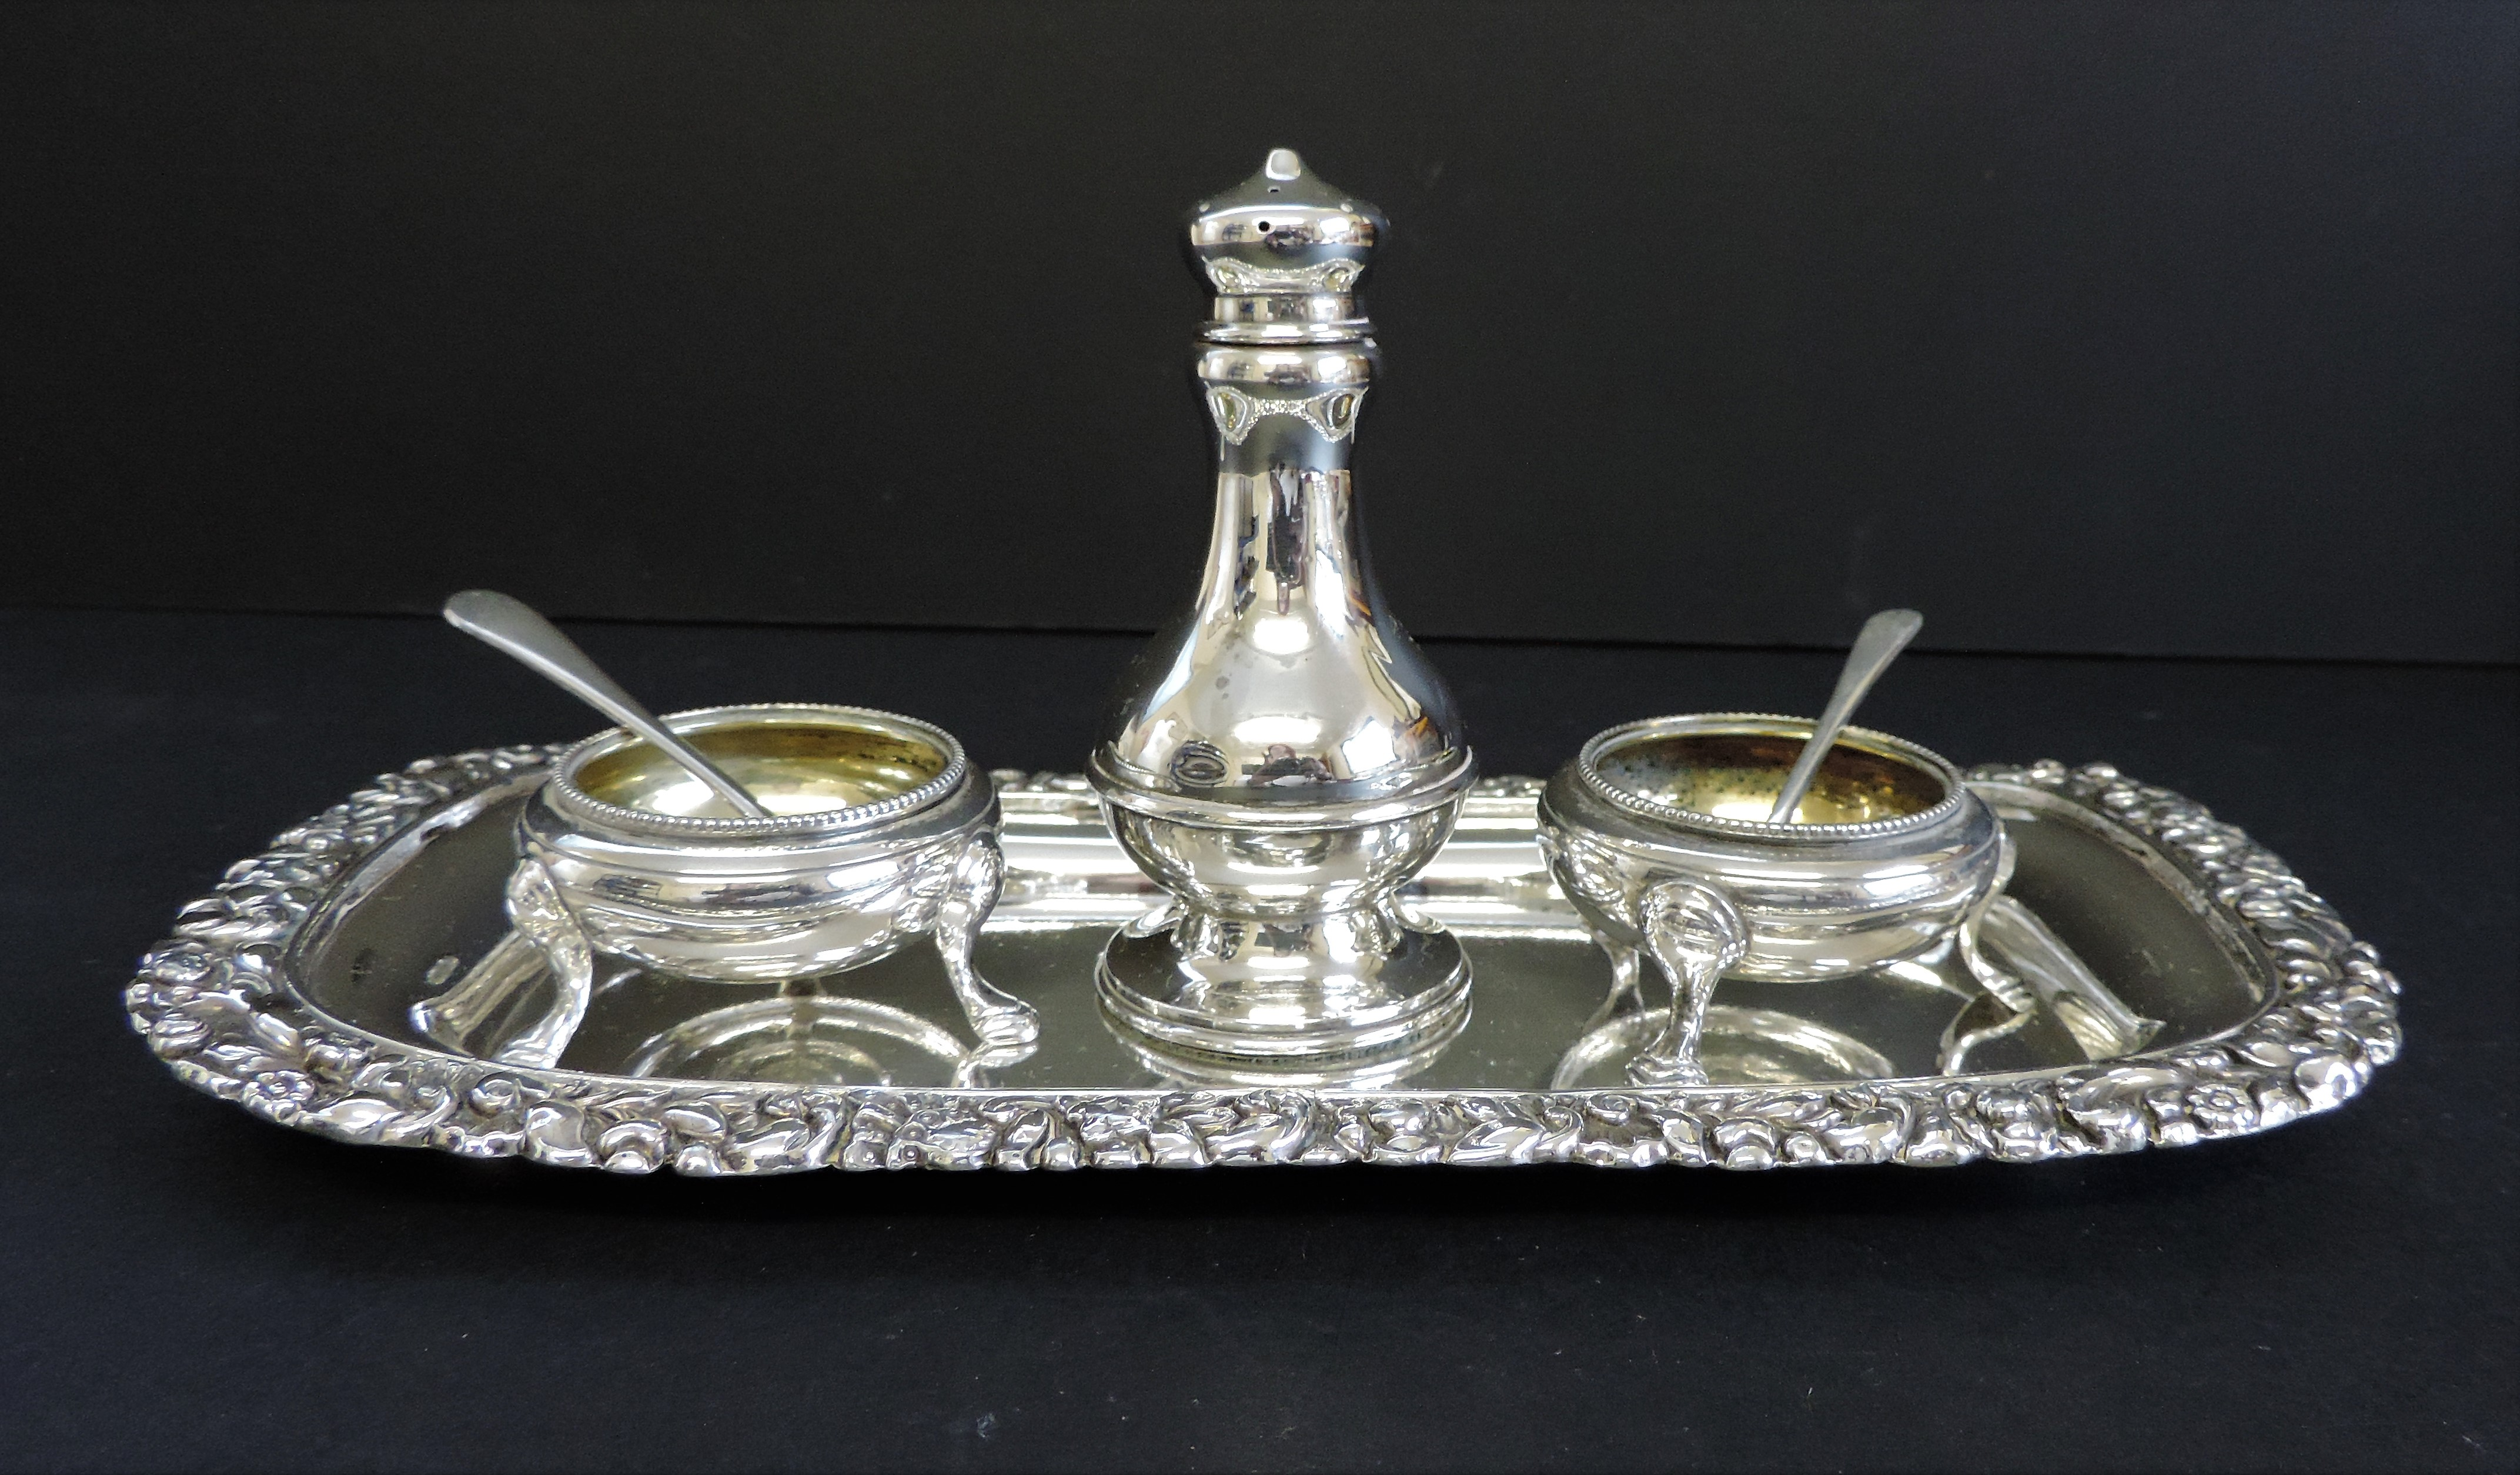 Antique Silver Plated 6 Piece Condiment Set - Image 2 of 5